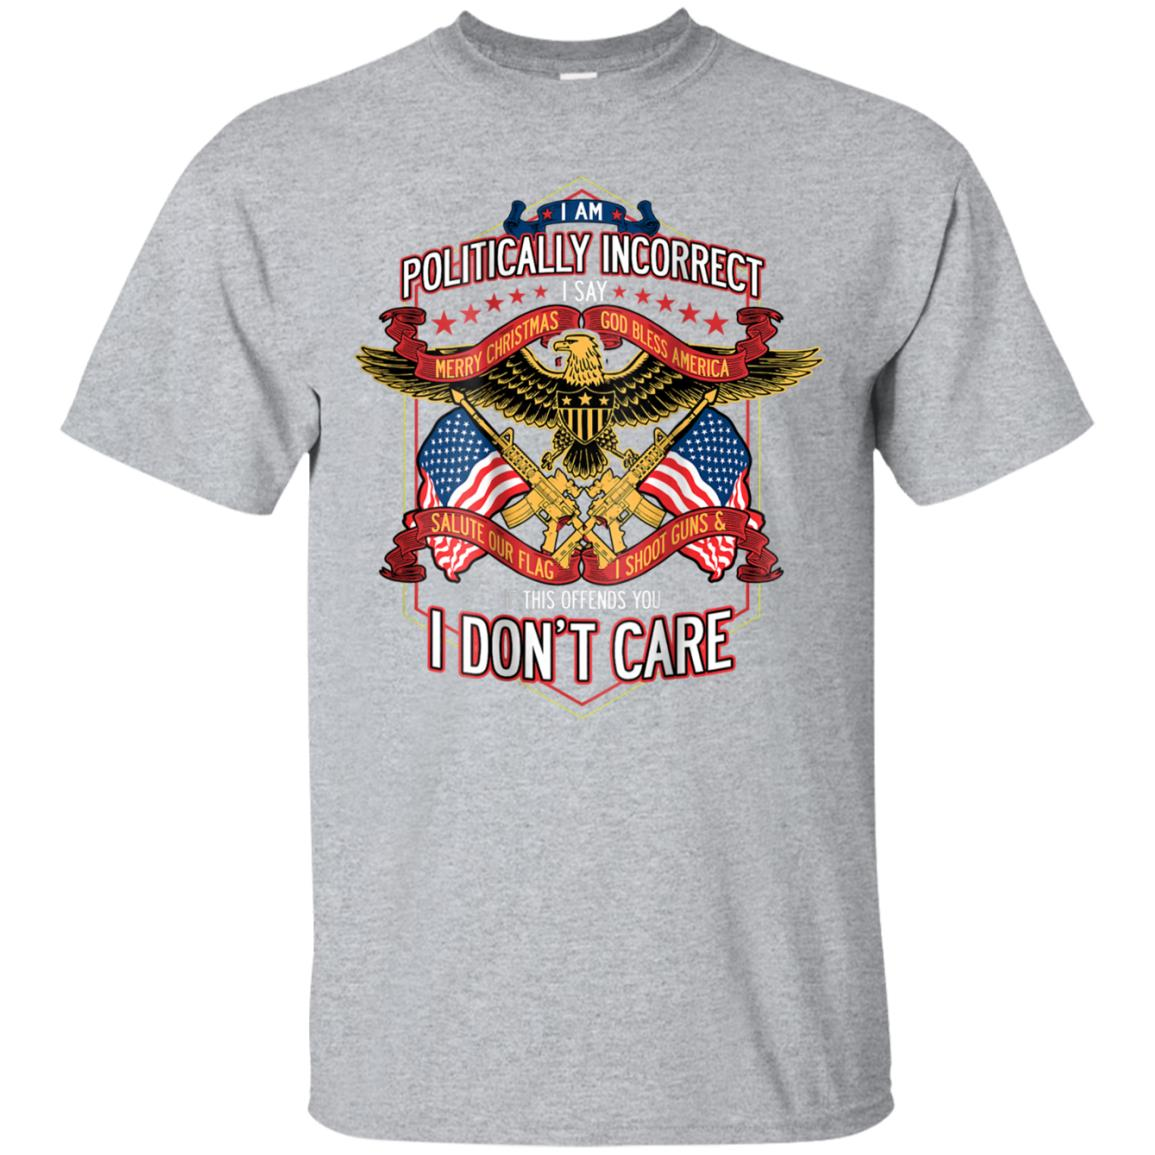 (Print On Back) Politically Incorrect Conservative Tshirt 99promocode